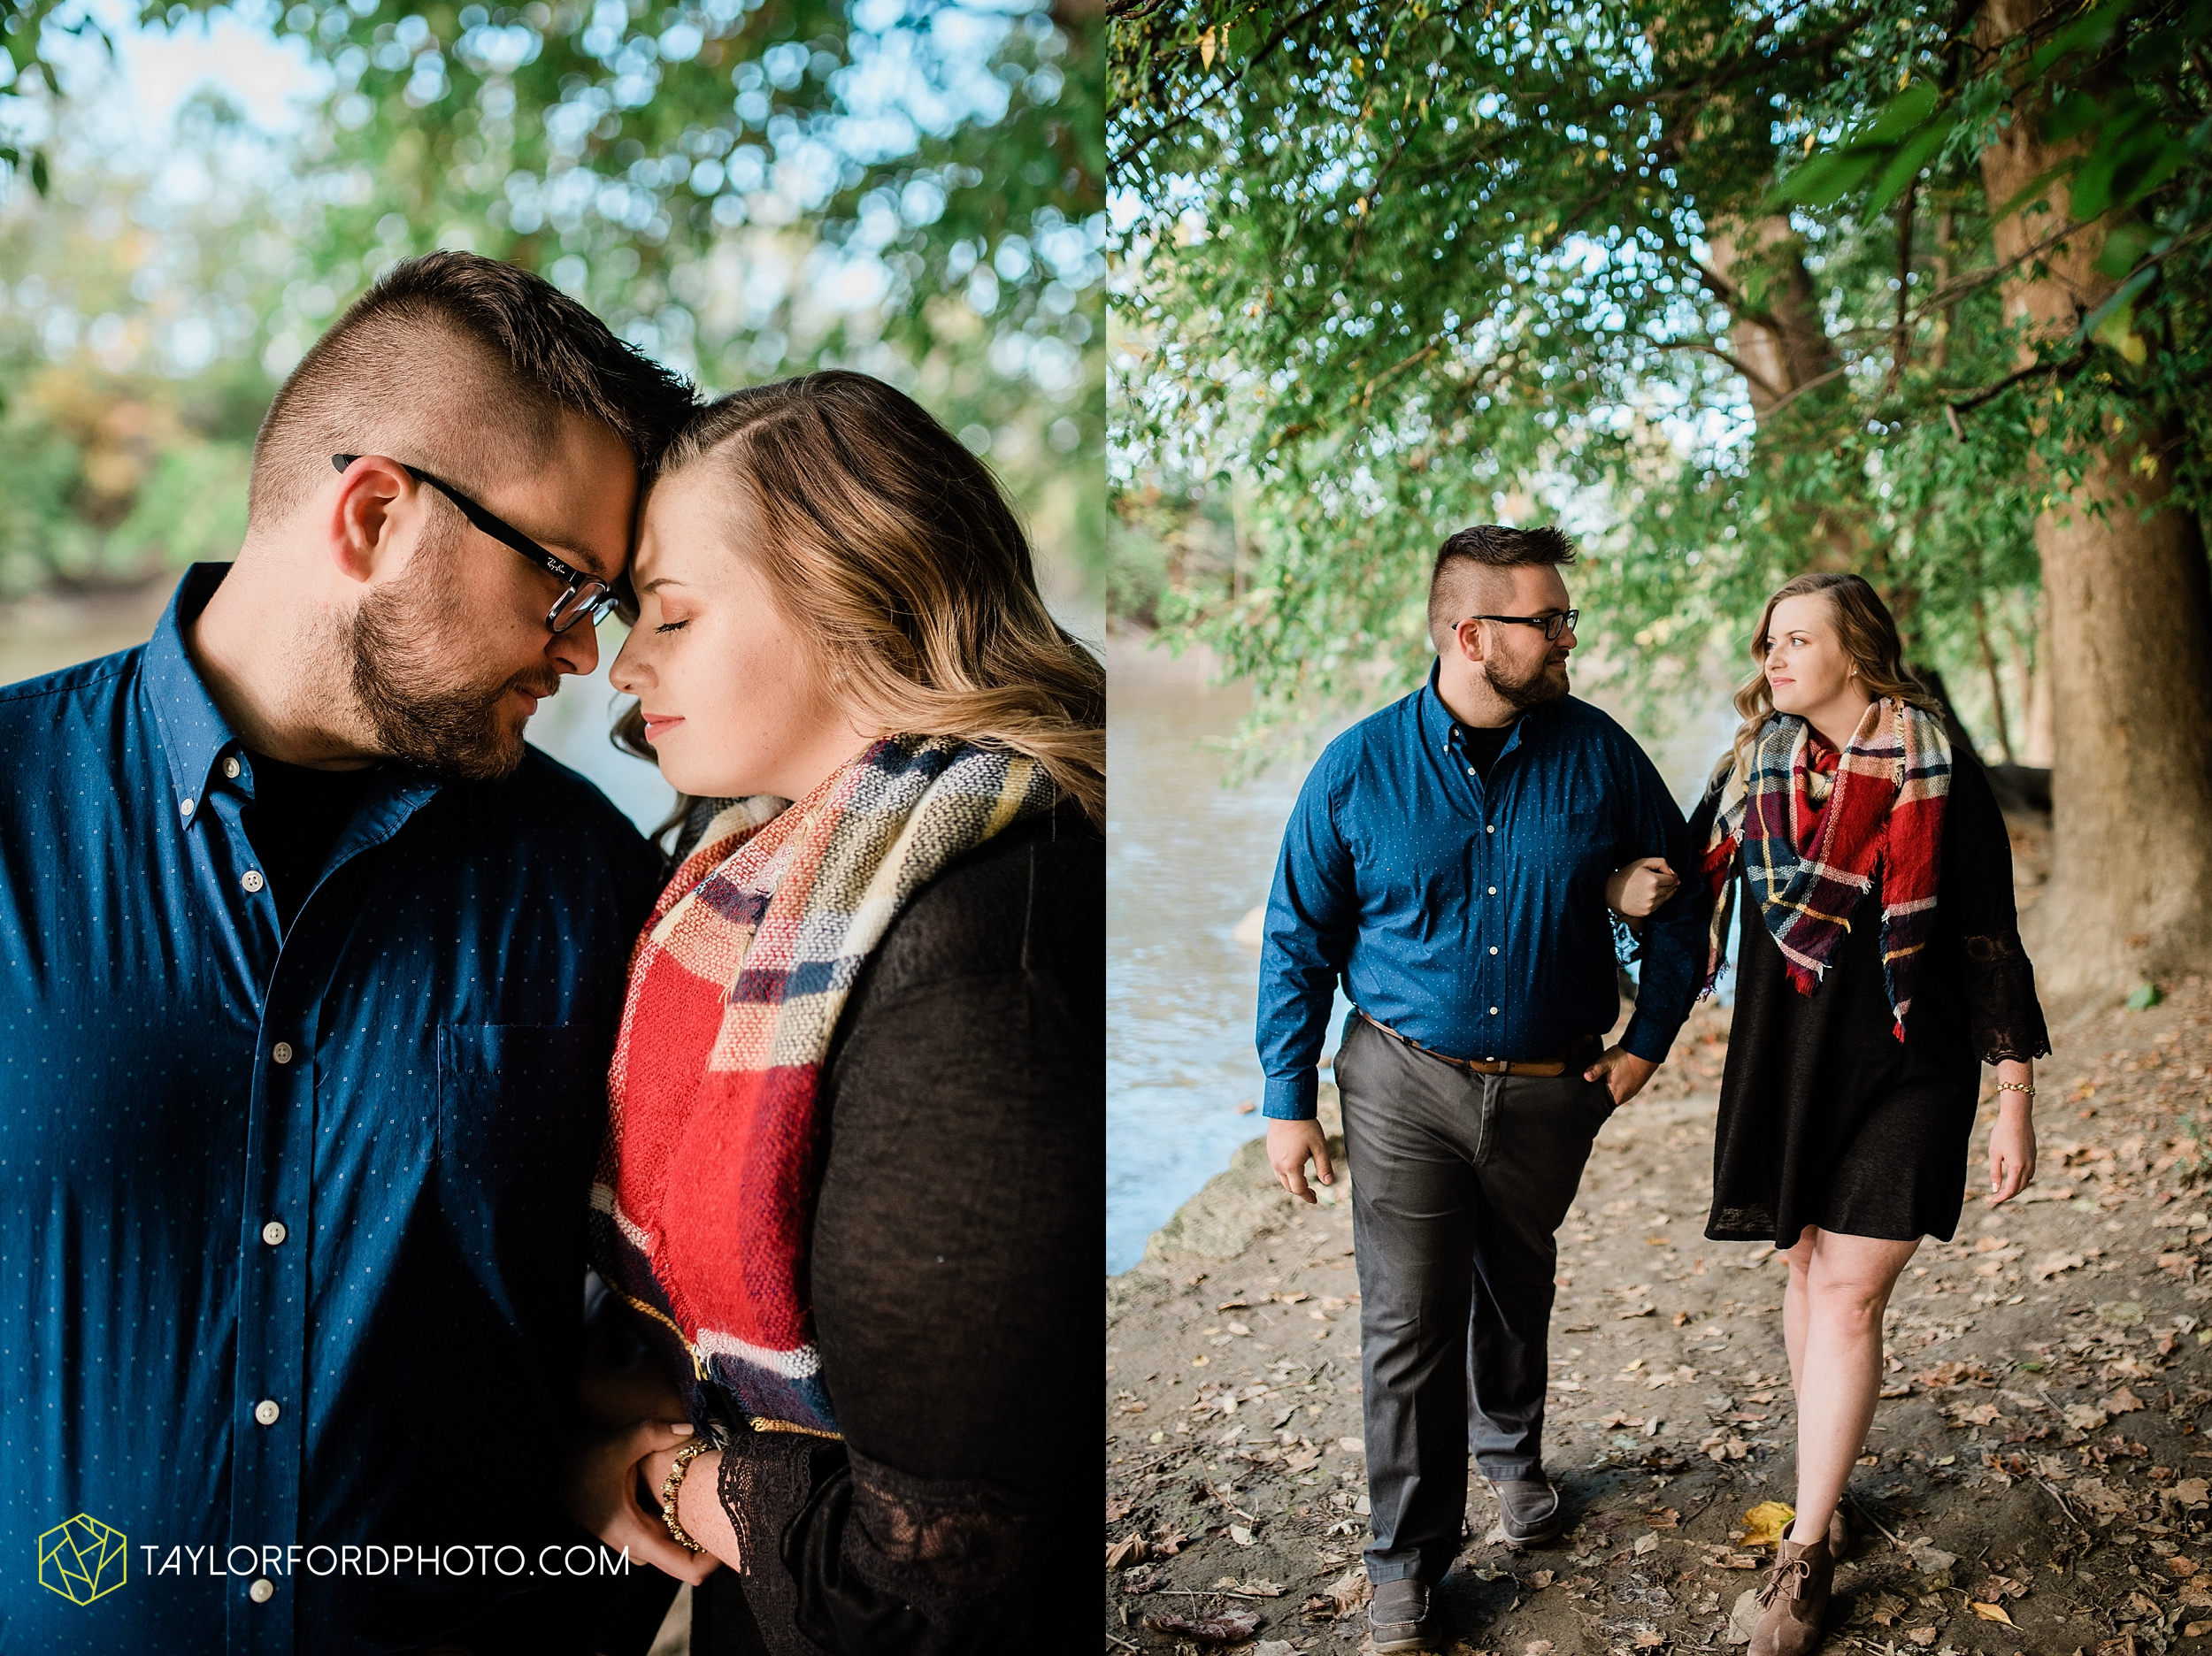 downtown-fort-wayne-engagement-foster-park-bravas-wunderkamer-fox-island-quarry-photographer-taylor-ford-photography_0966.jpg